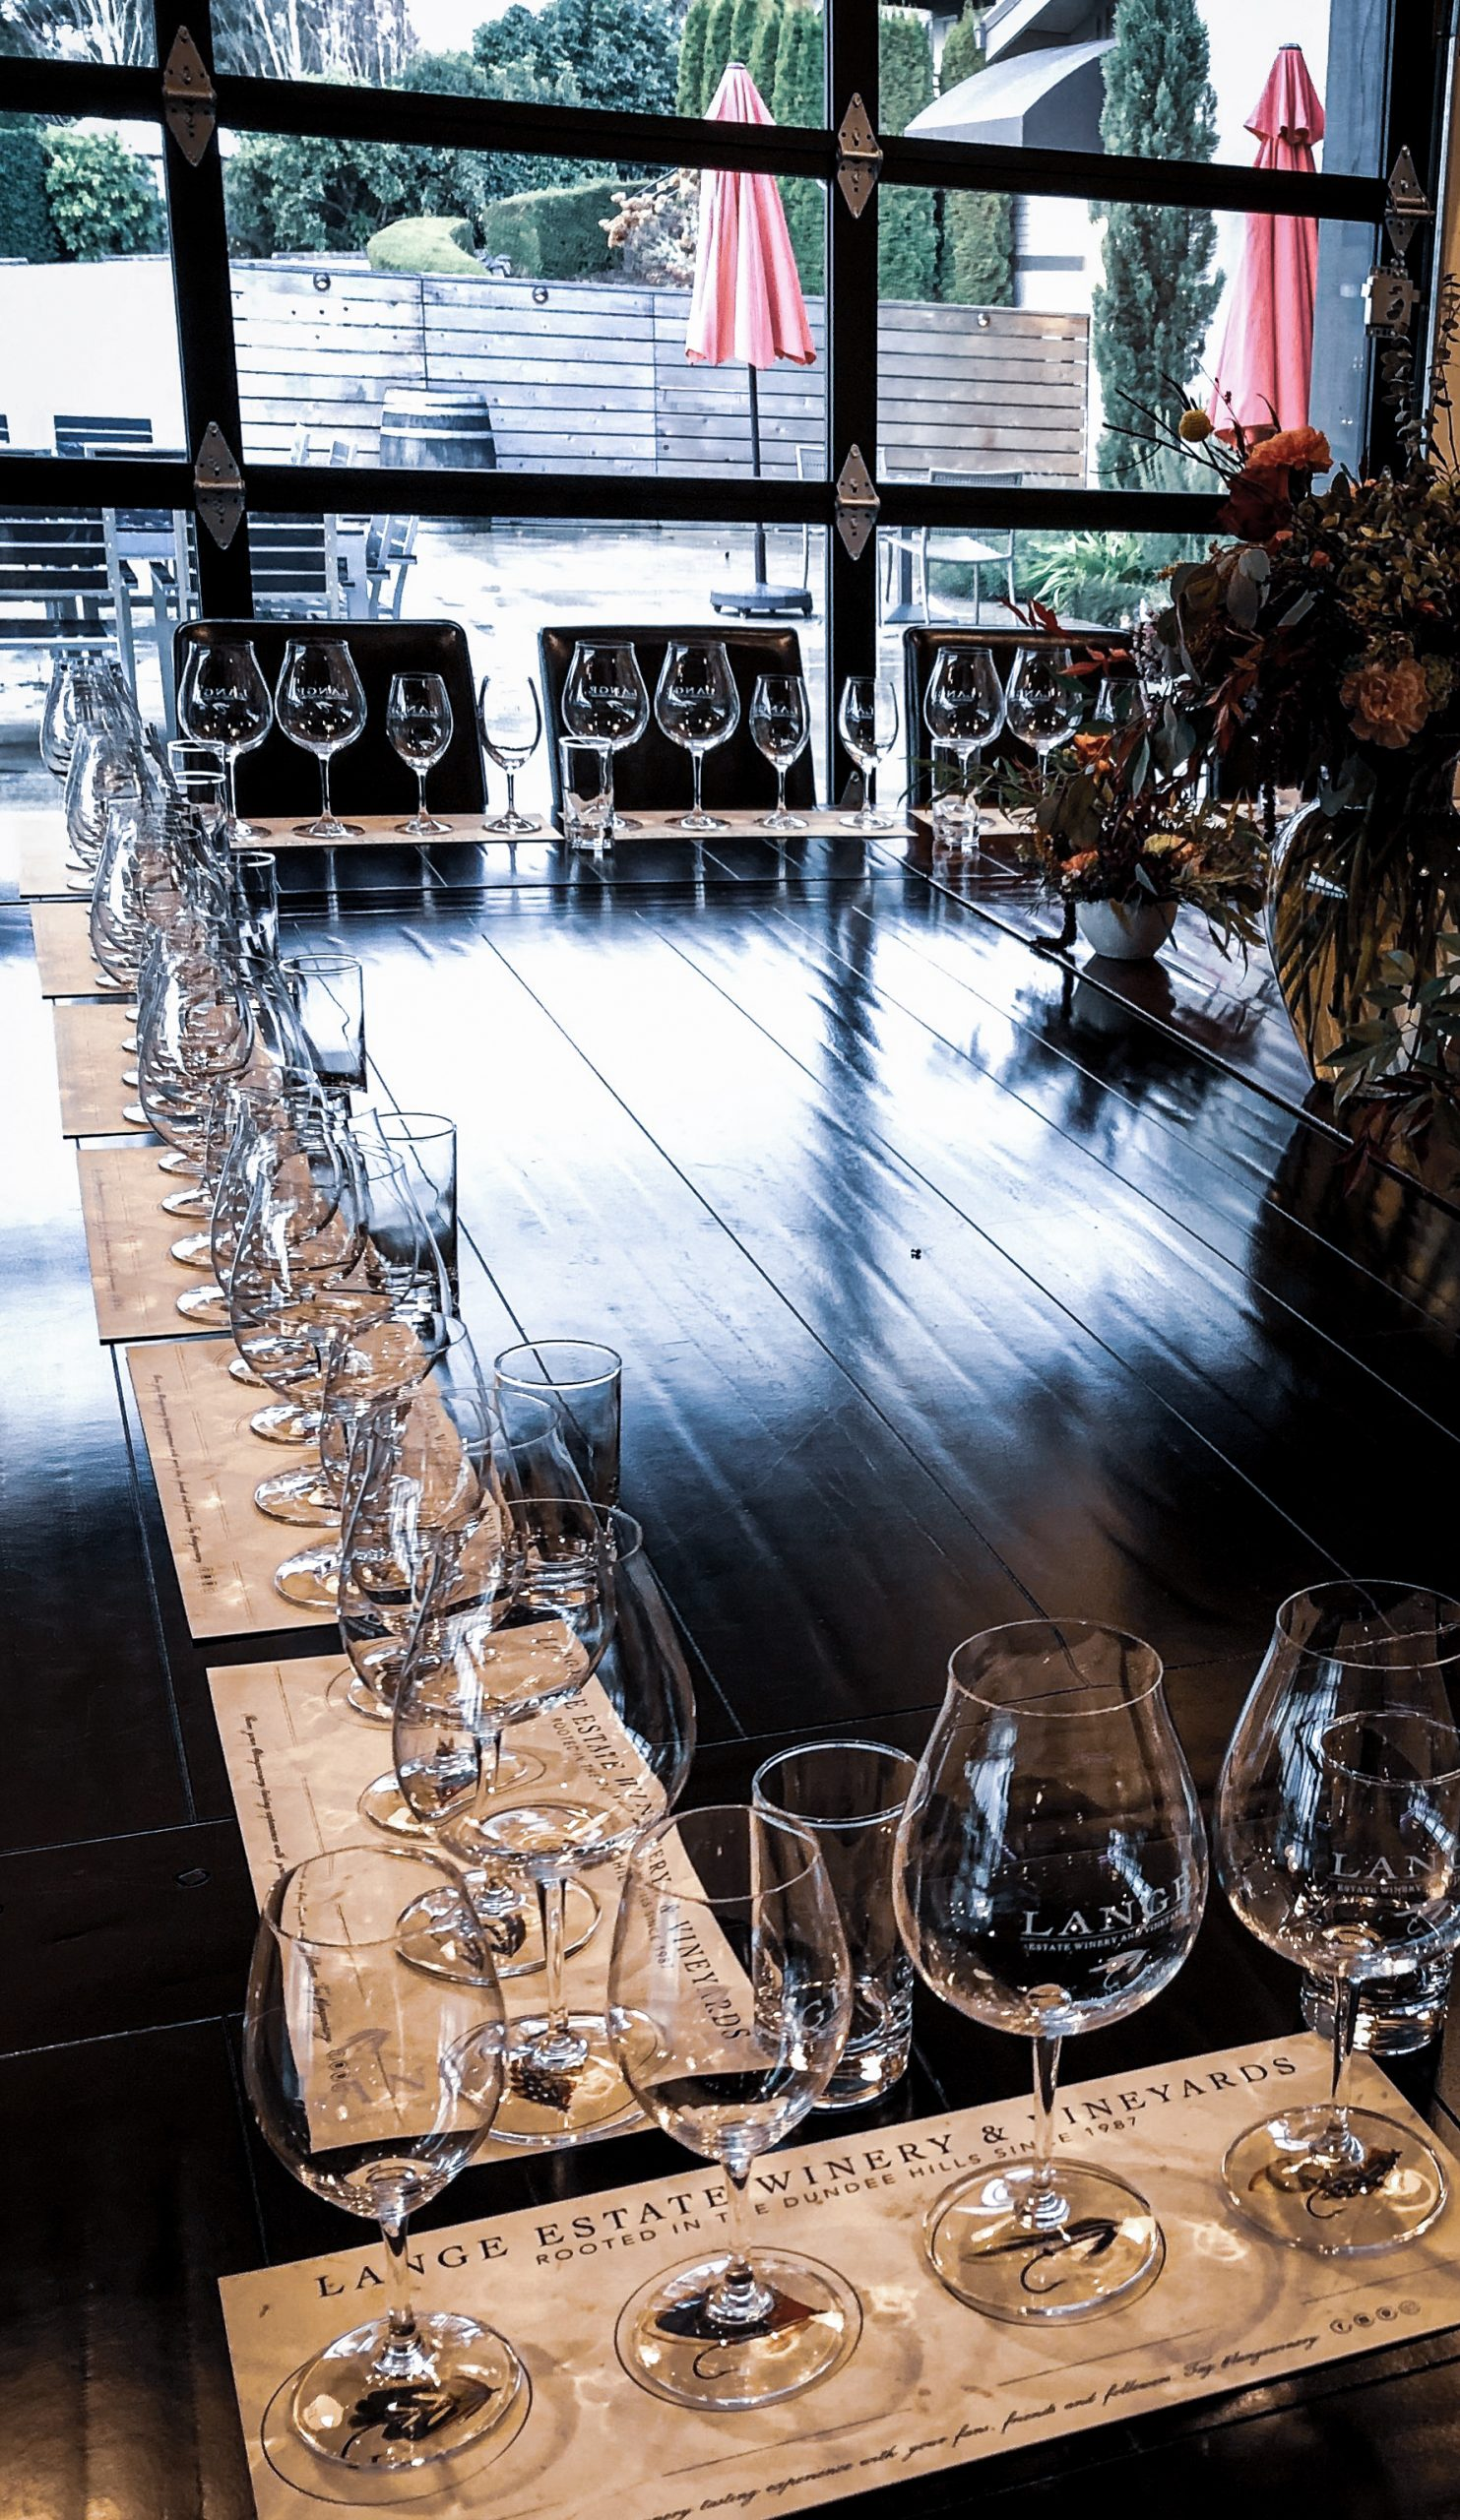 Table set for large group tasting.